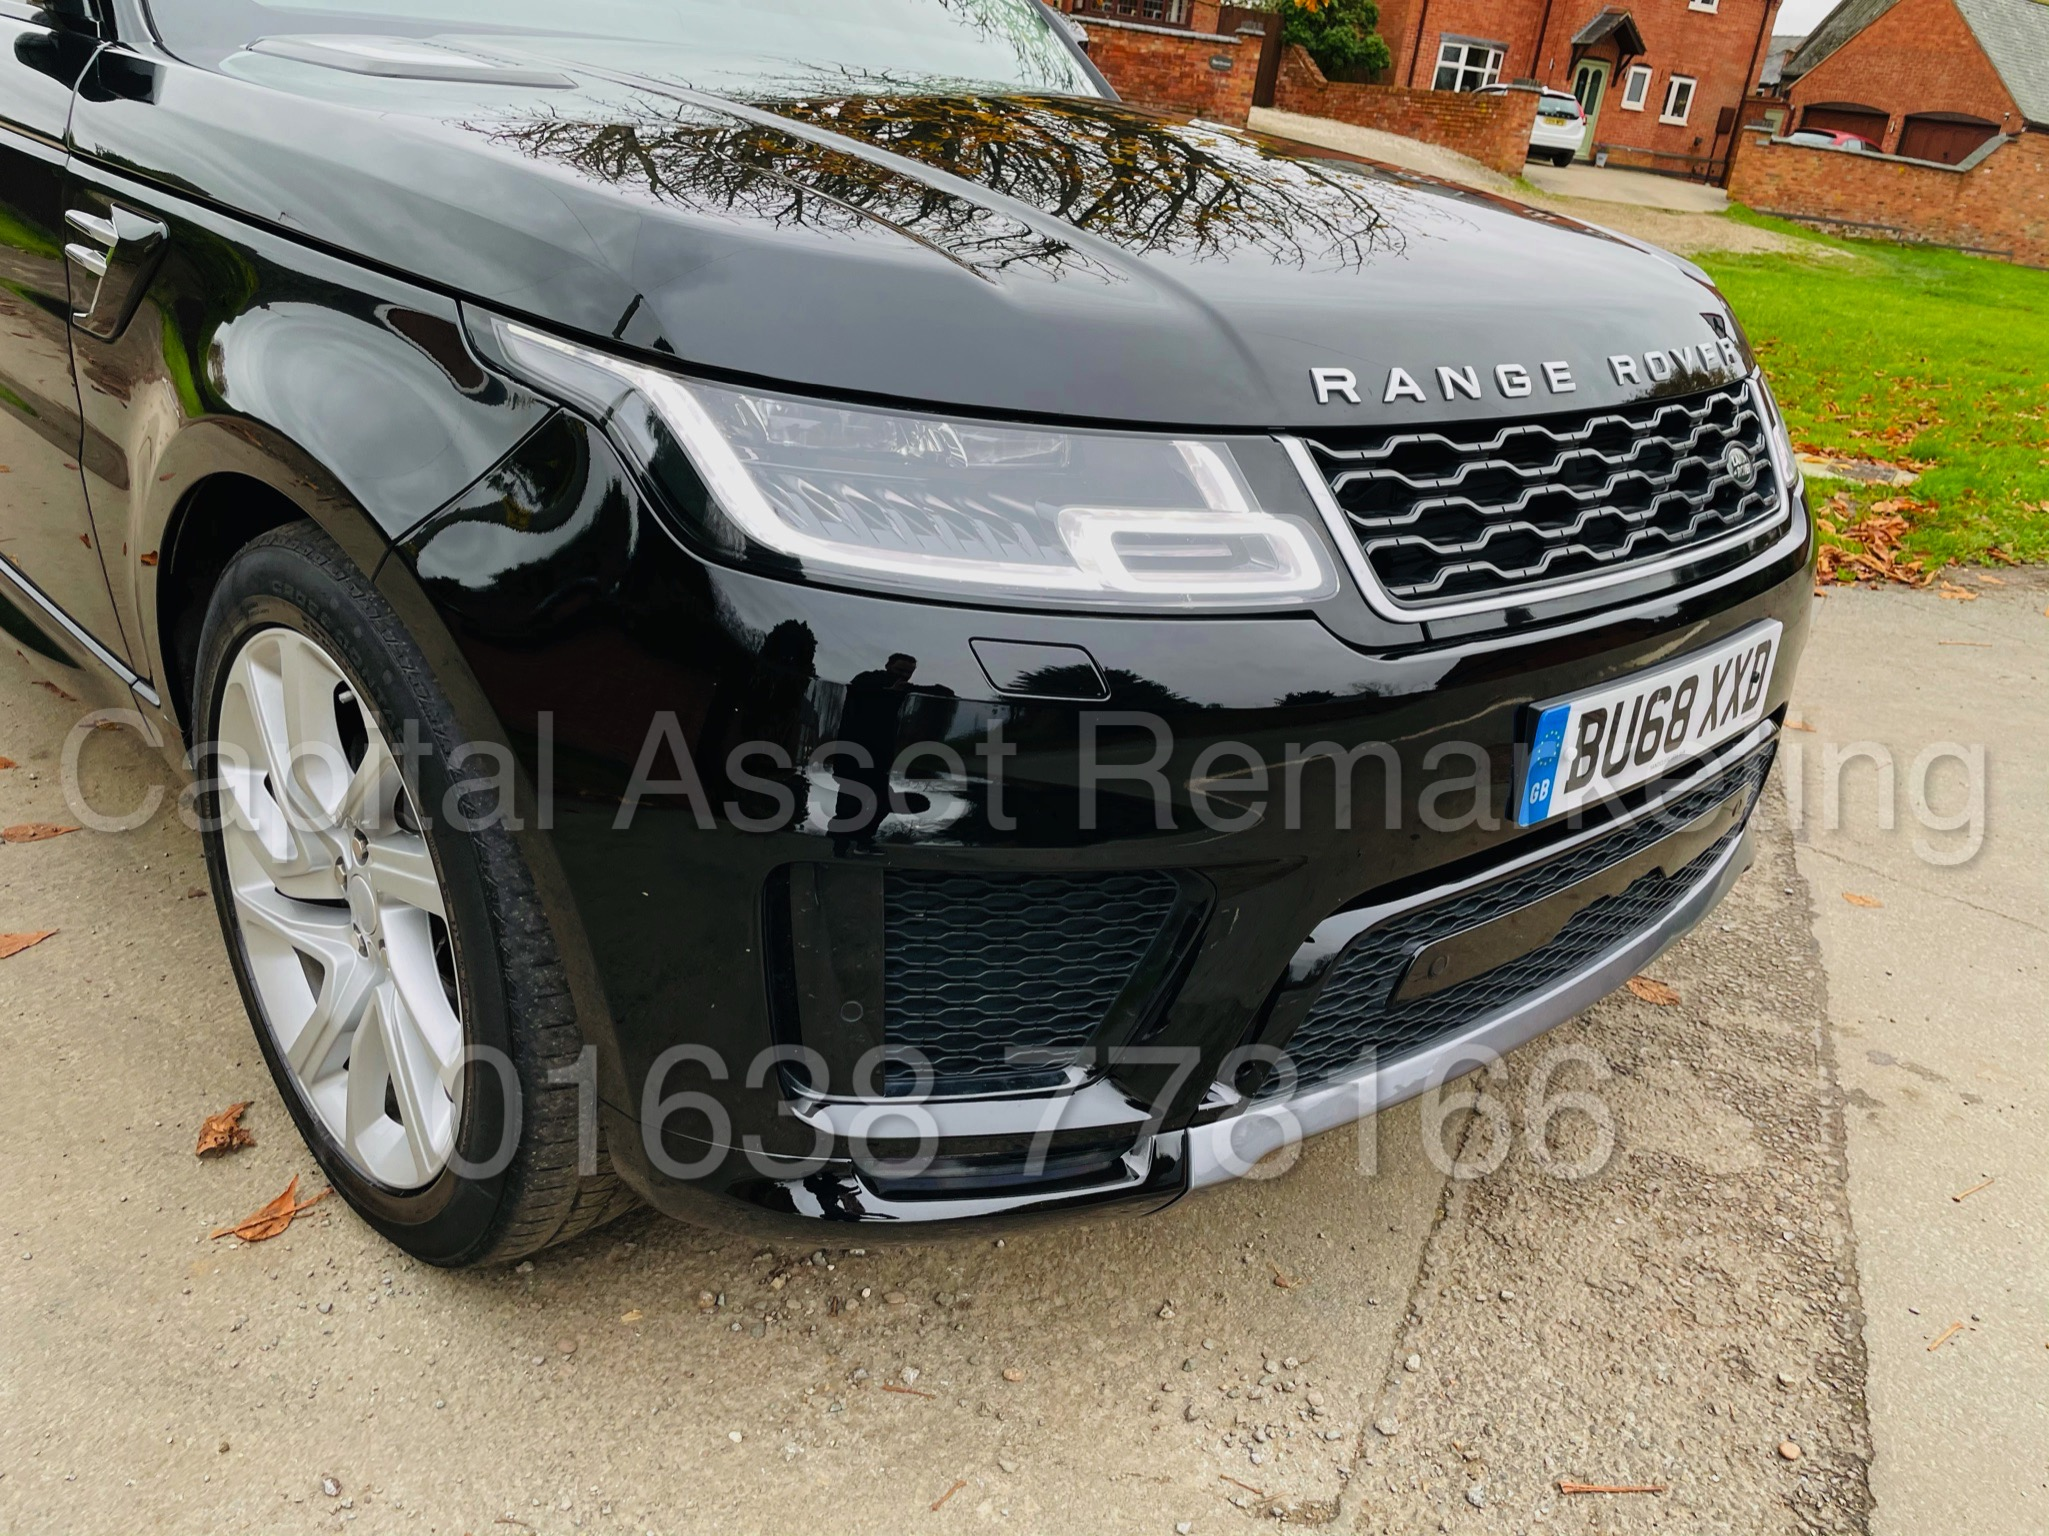 RANGE ROVER SPORT *HSE EDITION* SUV (2019 MODEL) '3.0 SDV6 - 306 BHP - 8 SPEED AUTO' *FULLY LOADED* - Image 15 of 56